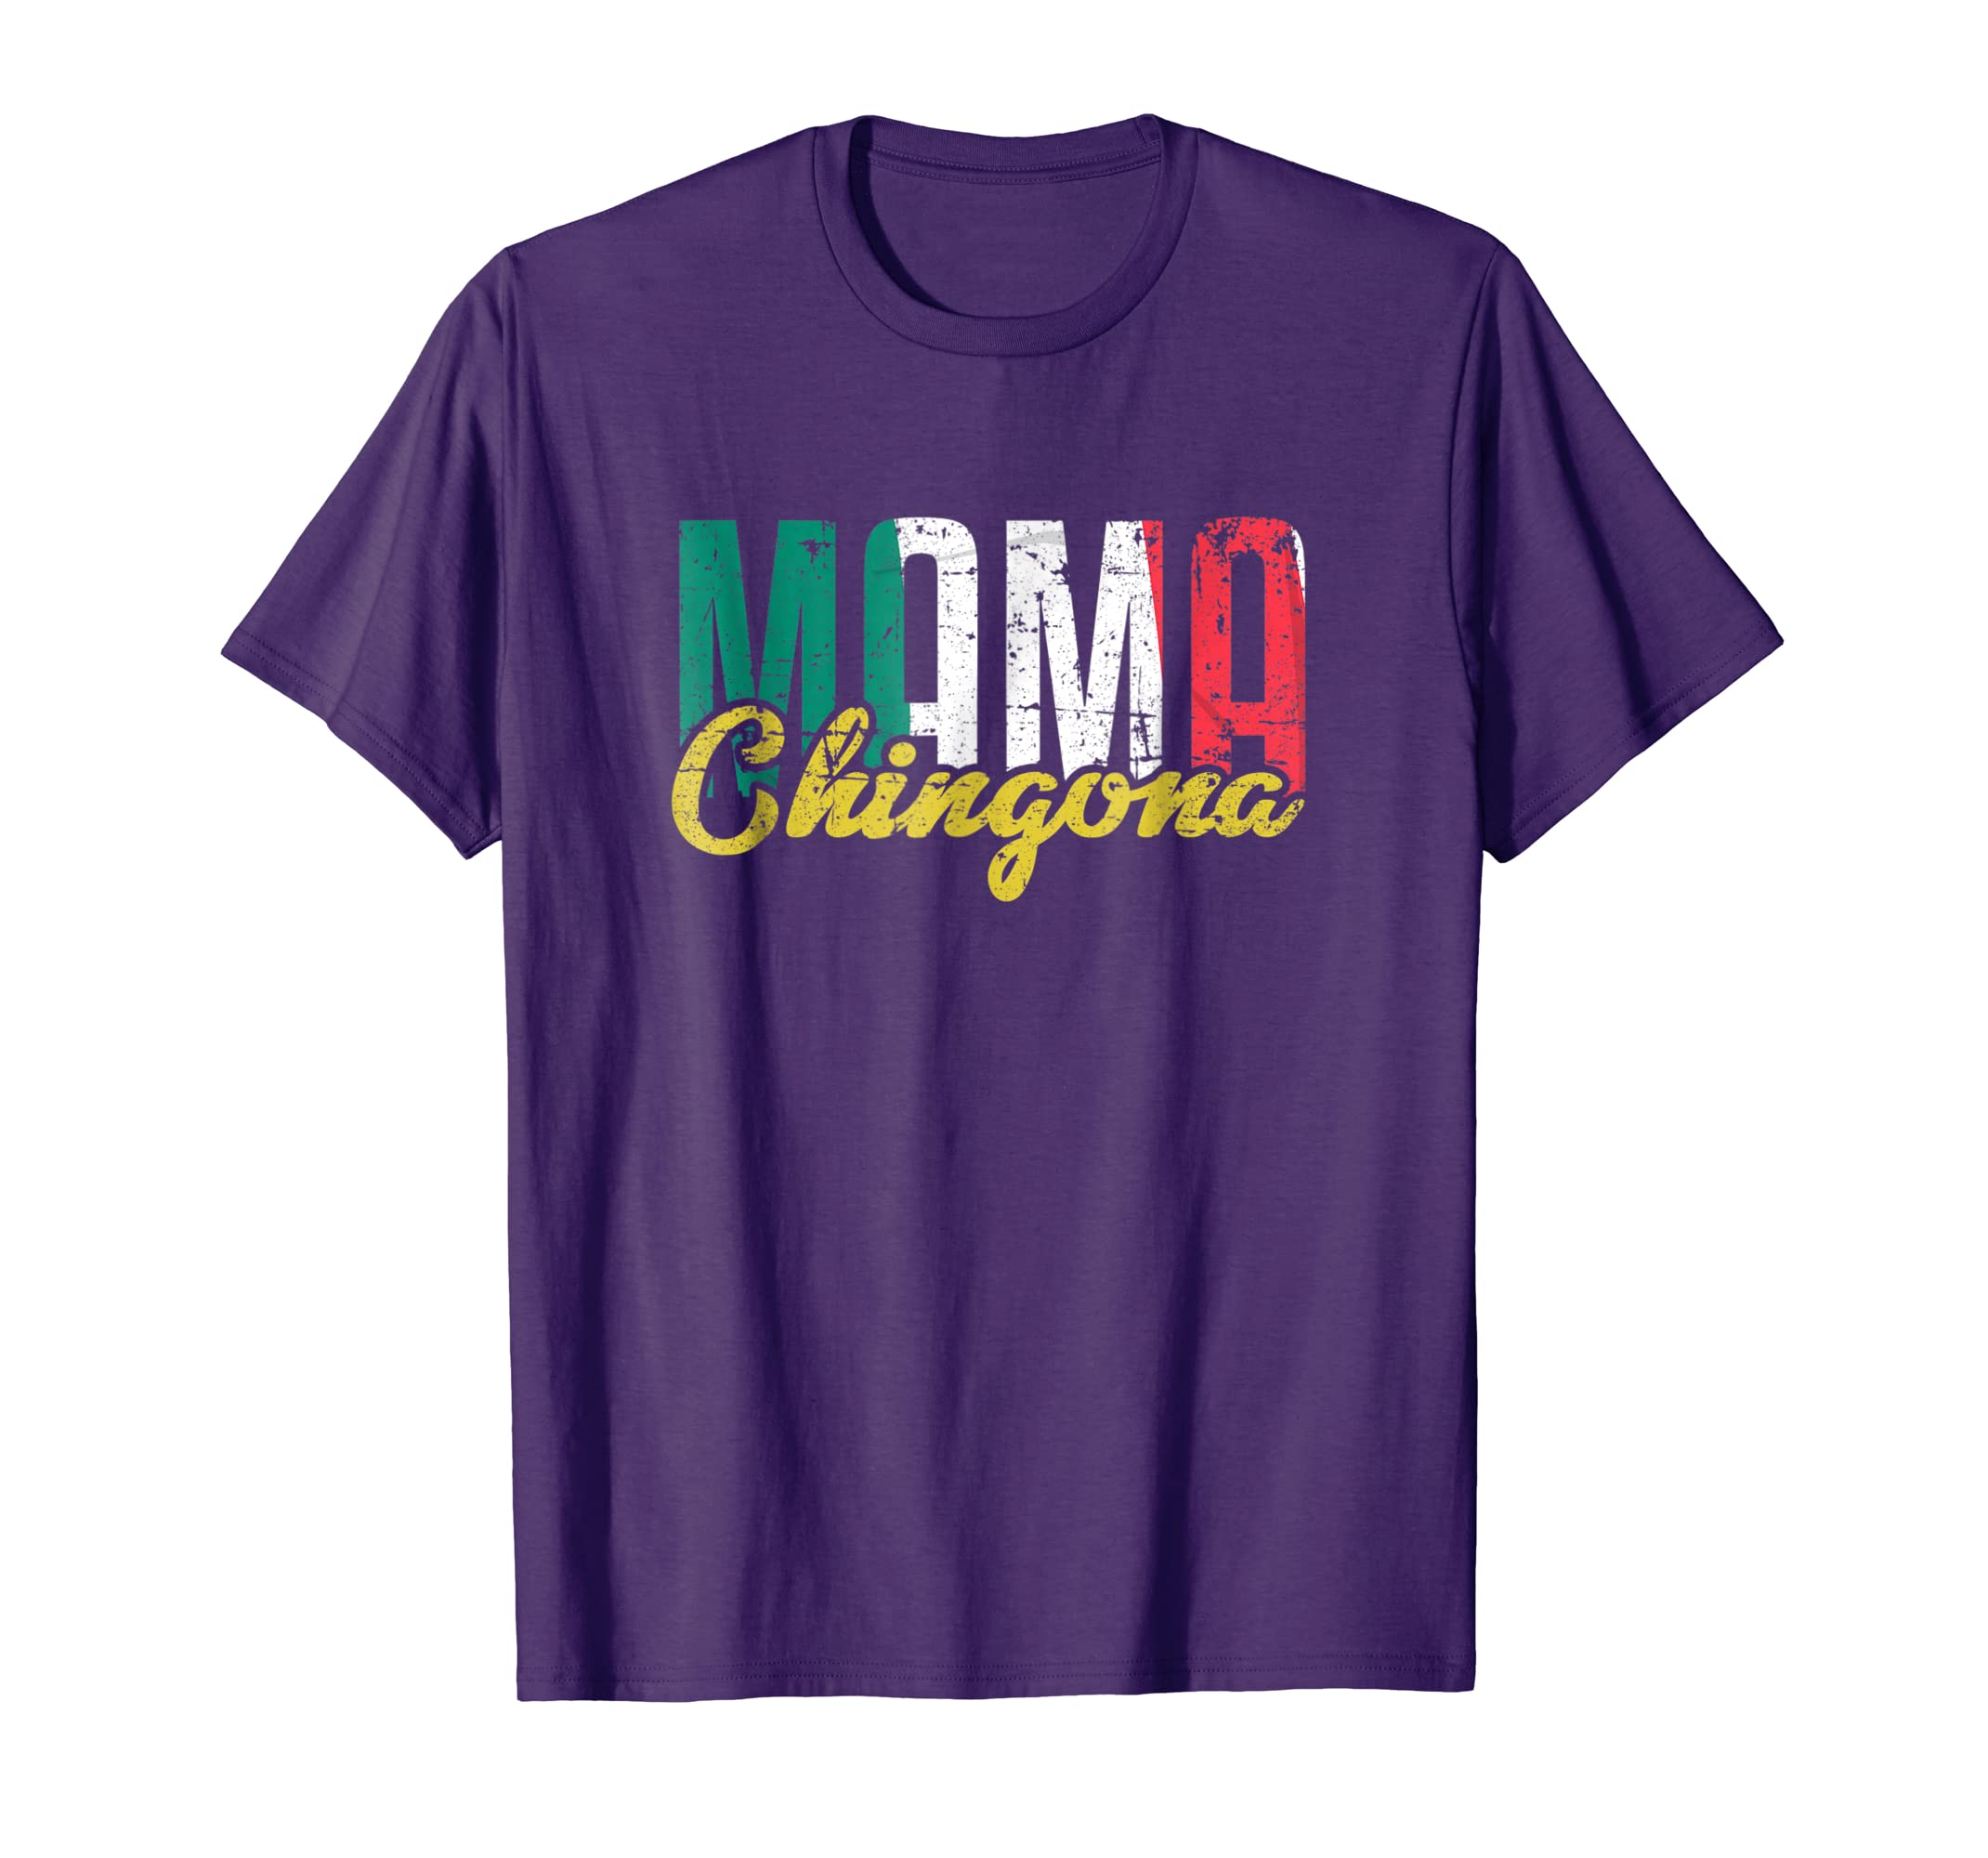 Mama Chingona Herritage Shirt for Mexican Mother's Day 2018-alottee gift